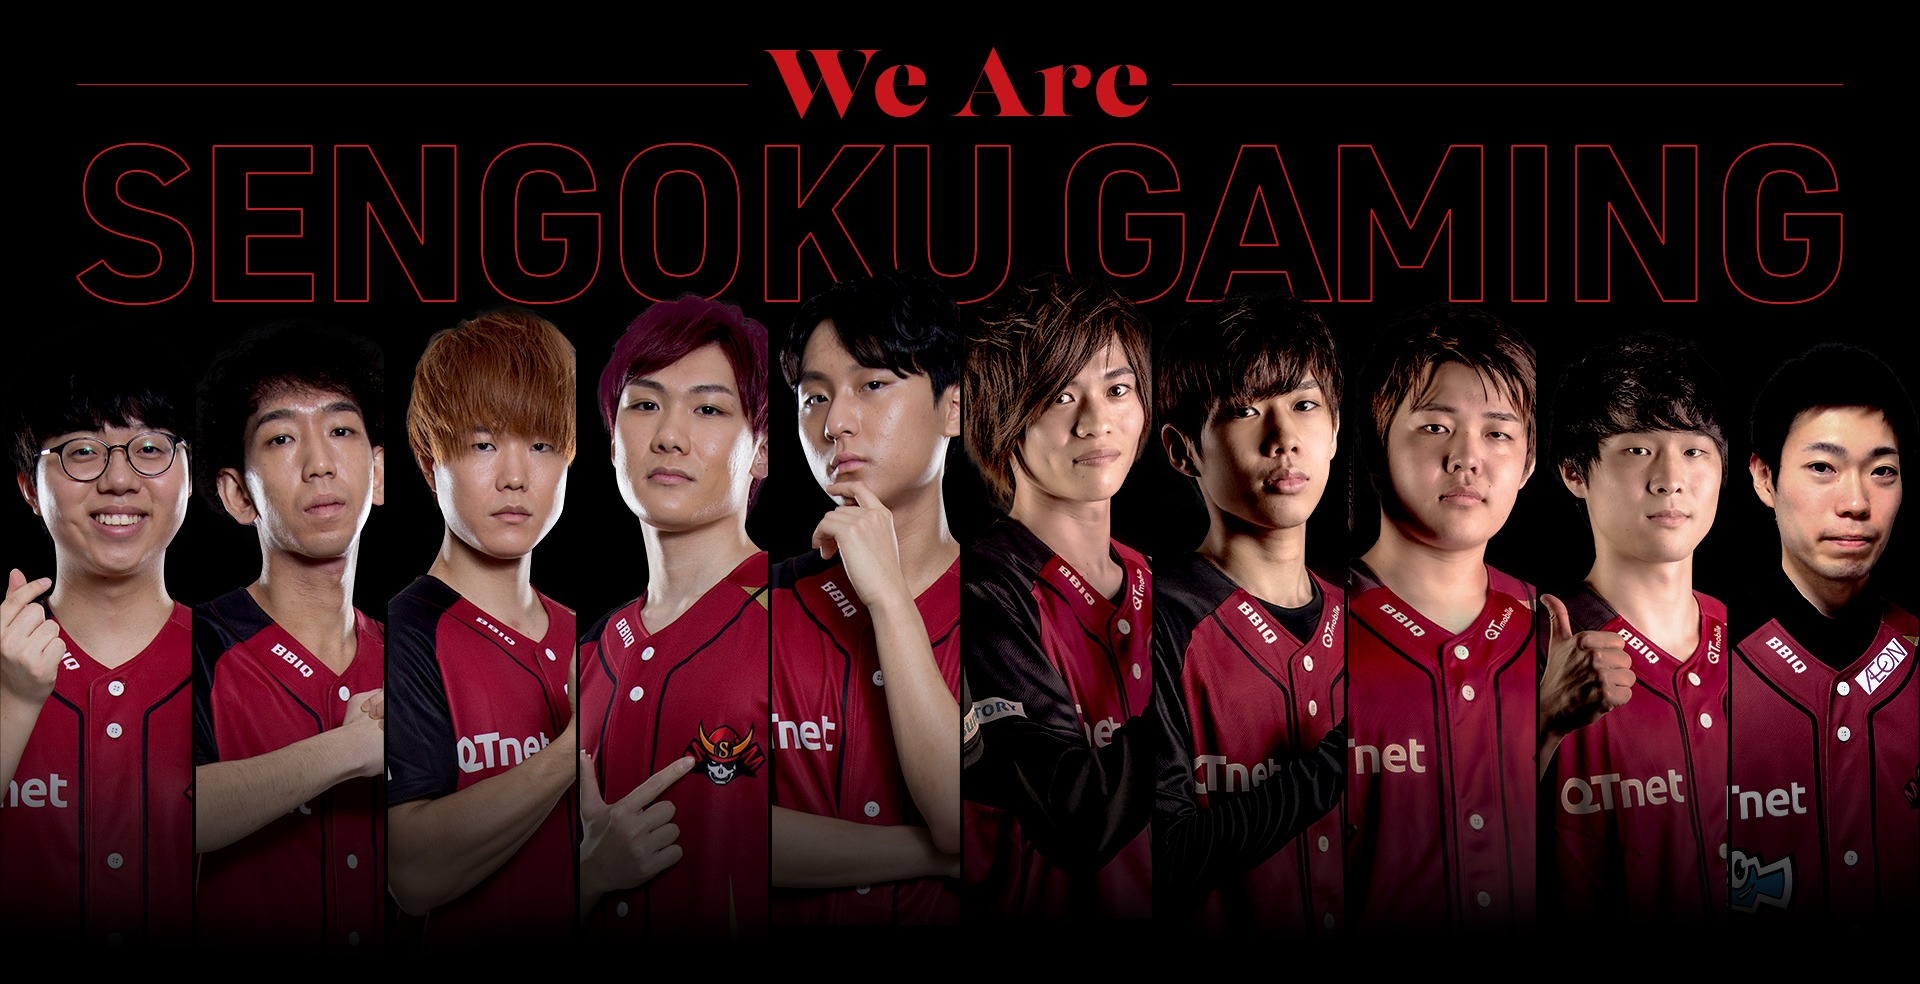 We Are SENGOKU GAMING